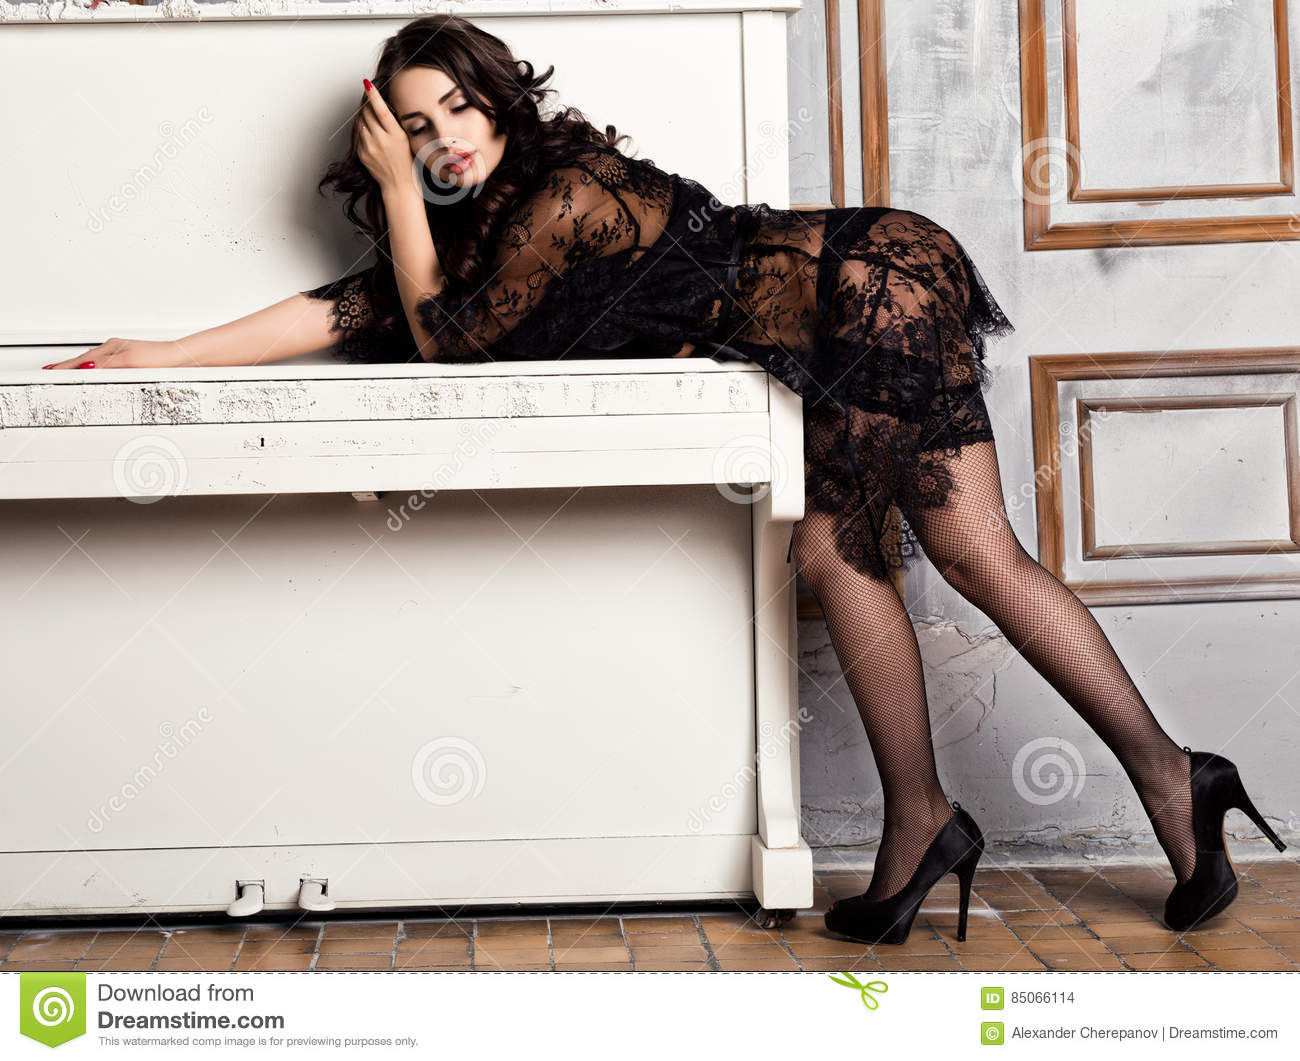 a179bc3764e Fashion young woman in black lacy lingerie and stockings posing on piano.